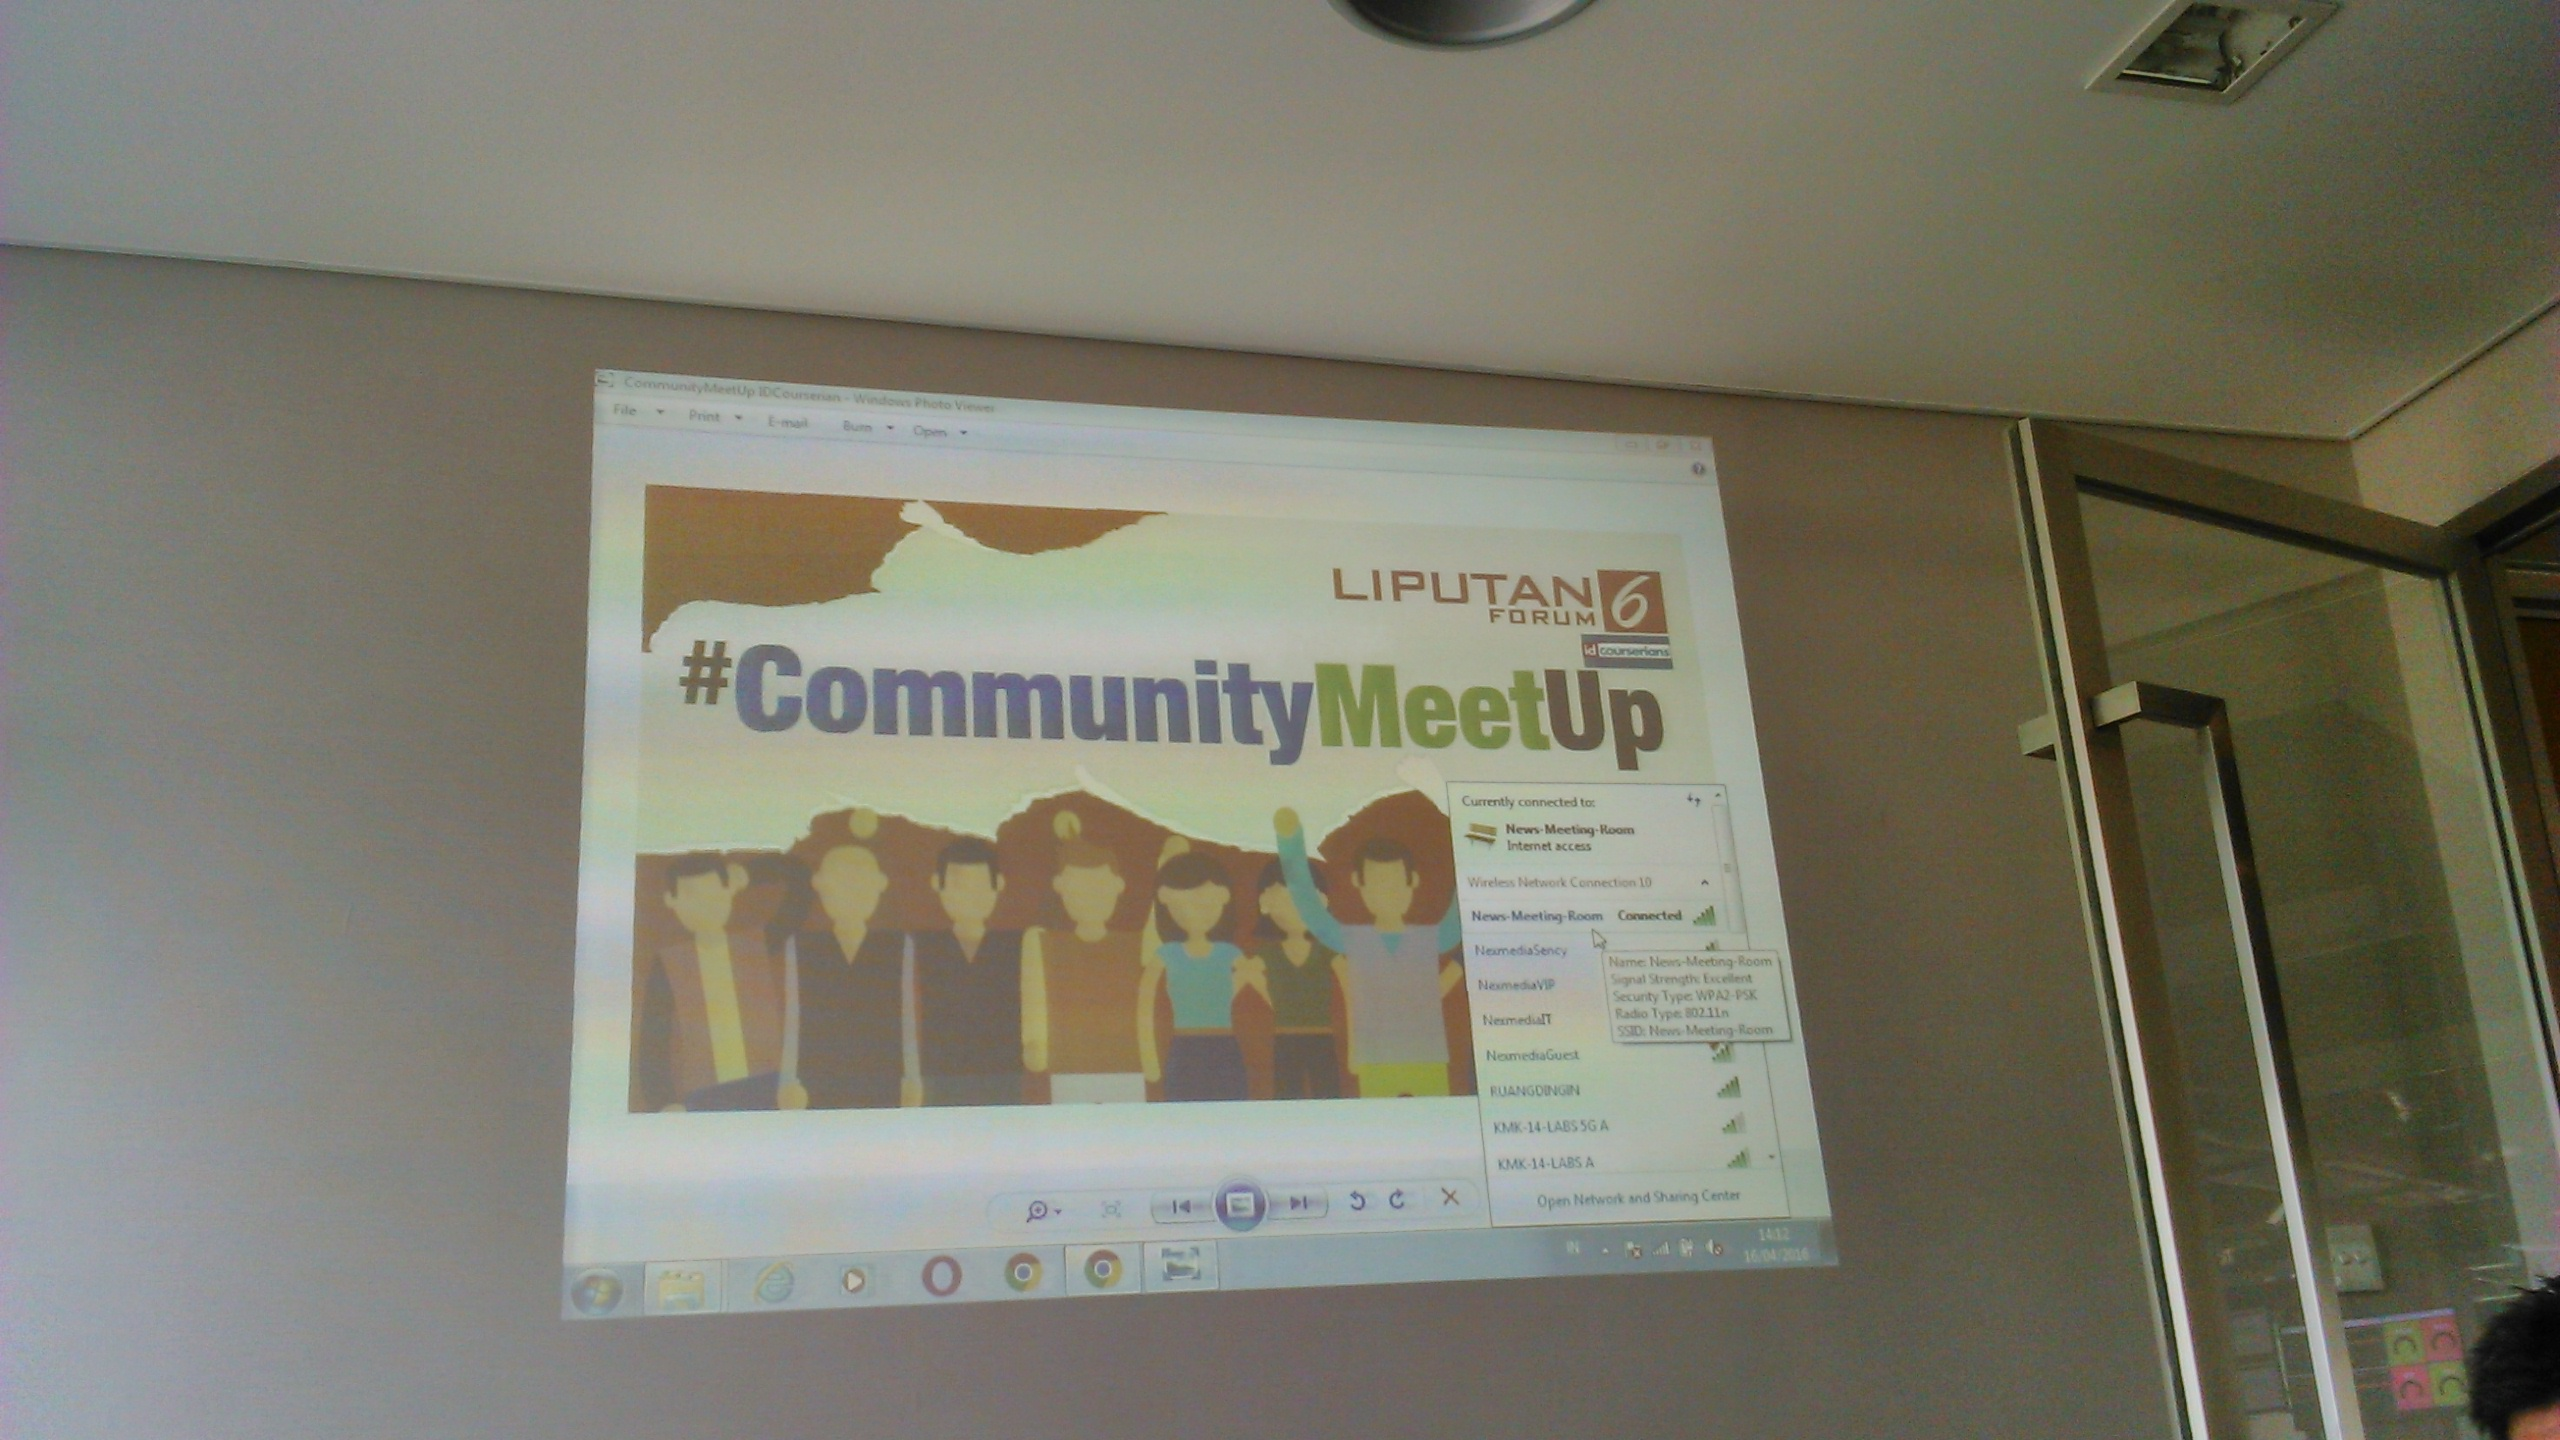 BloggerCrony Meets Up: 'Branding You and Your Blog' Bersama Dya Loretta & Forum Liputan6 SCTV